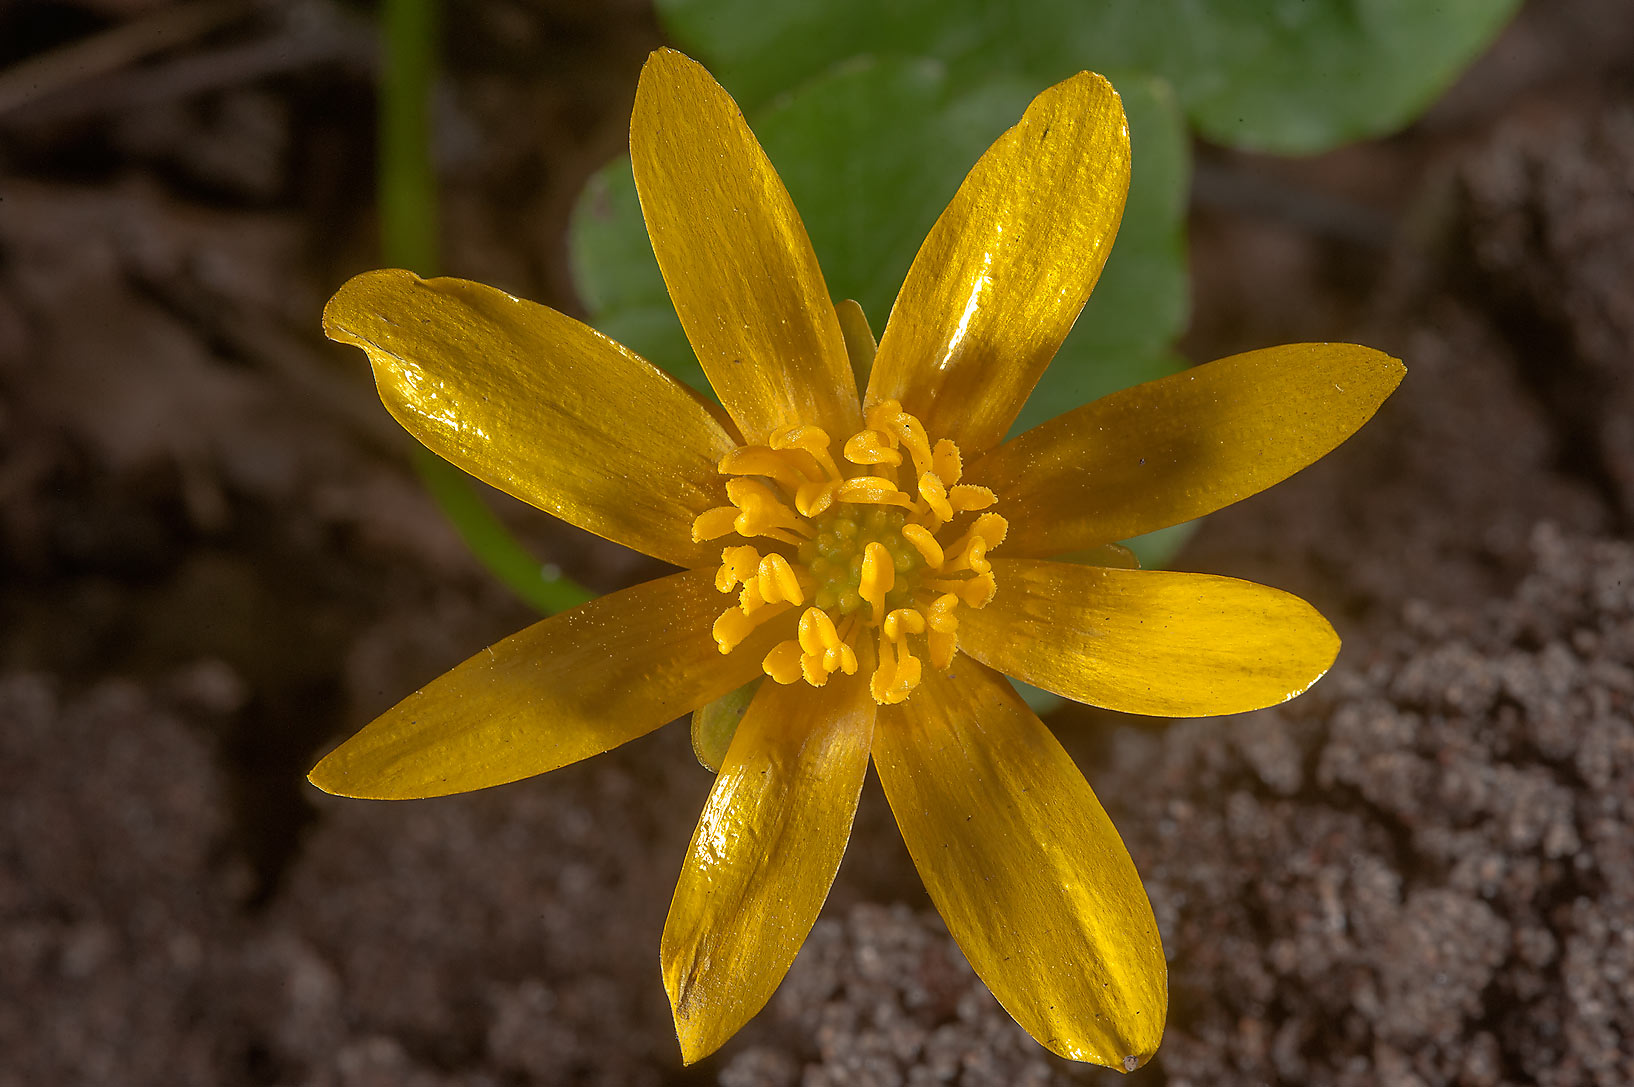 Flower of lesser celandine (Ficaria verna...a suburb of St.Petersburg, Russia